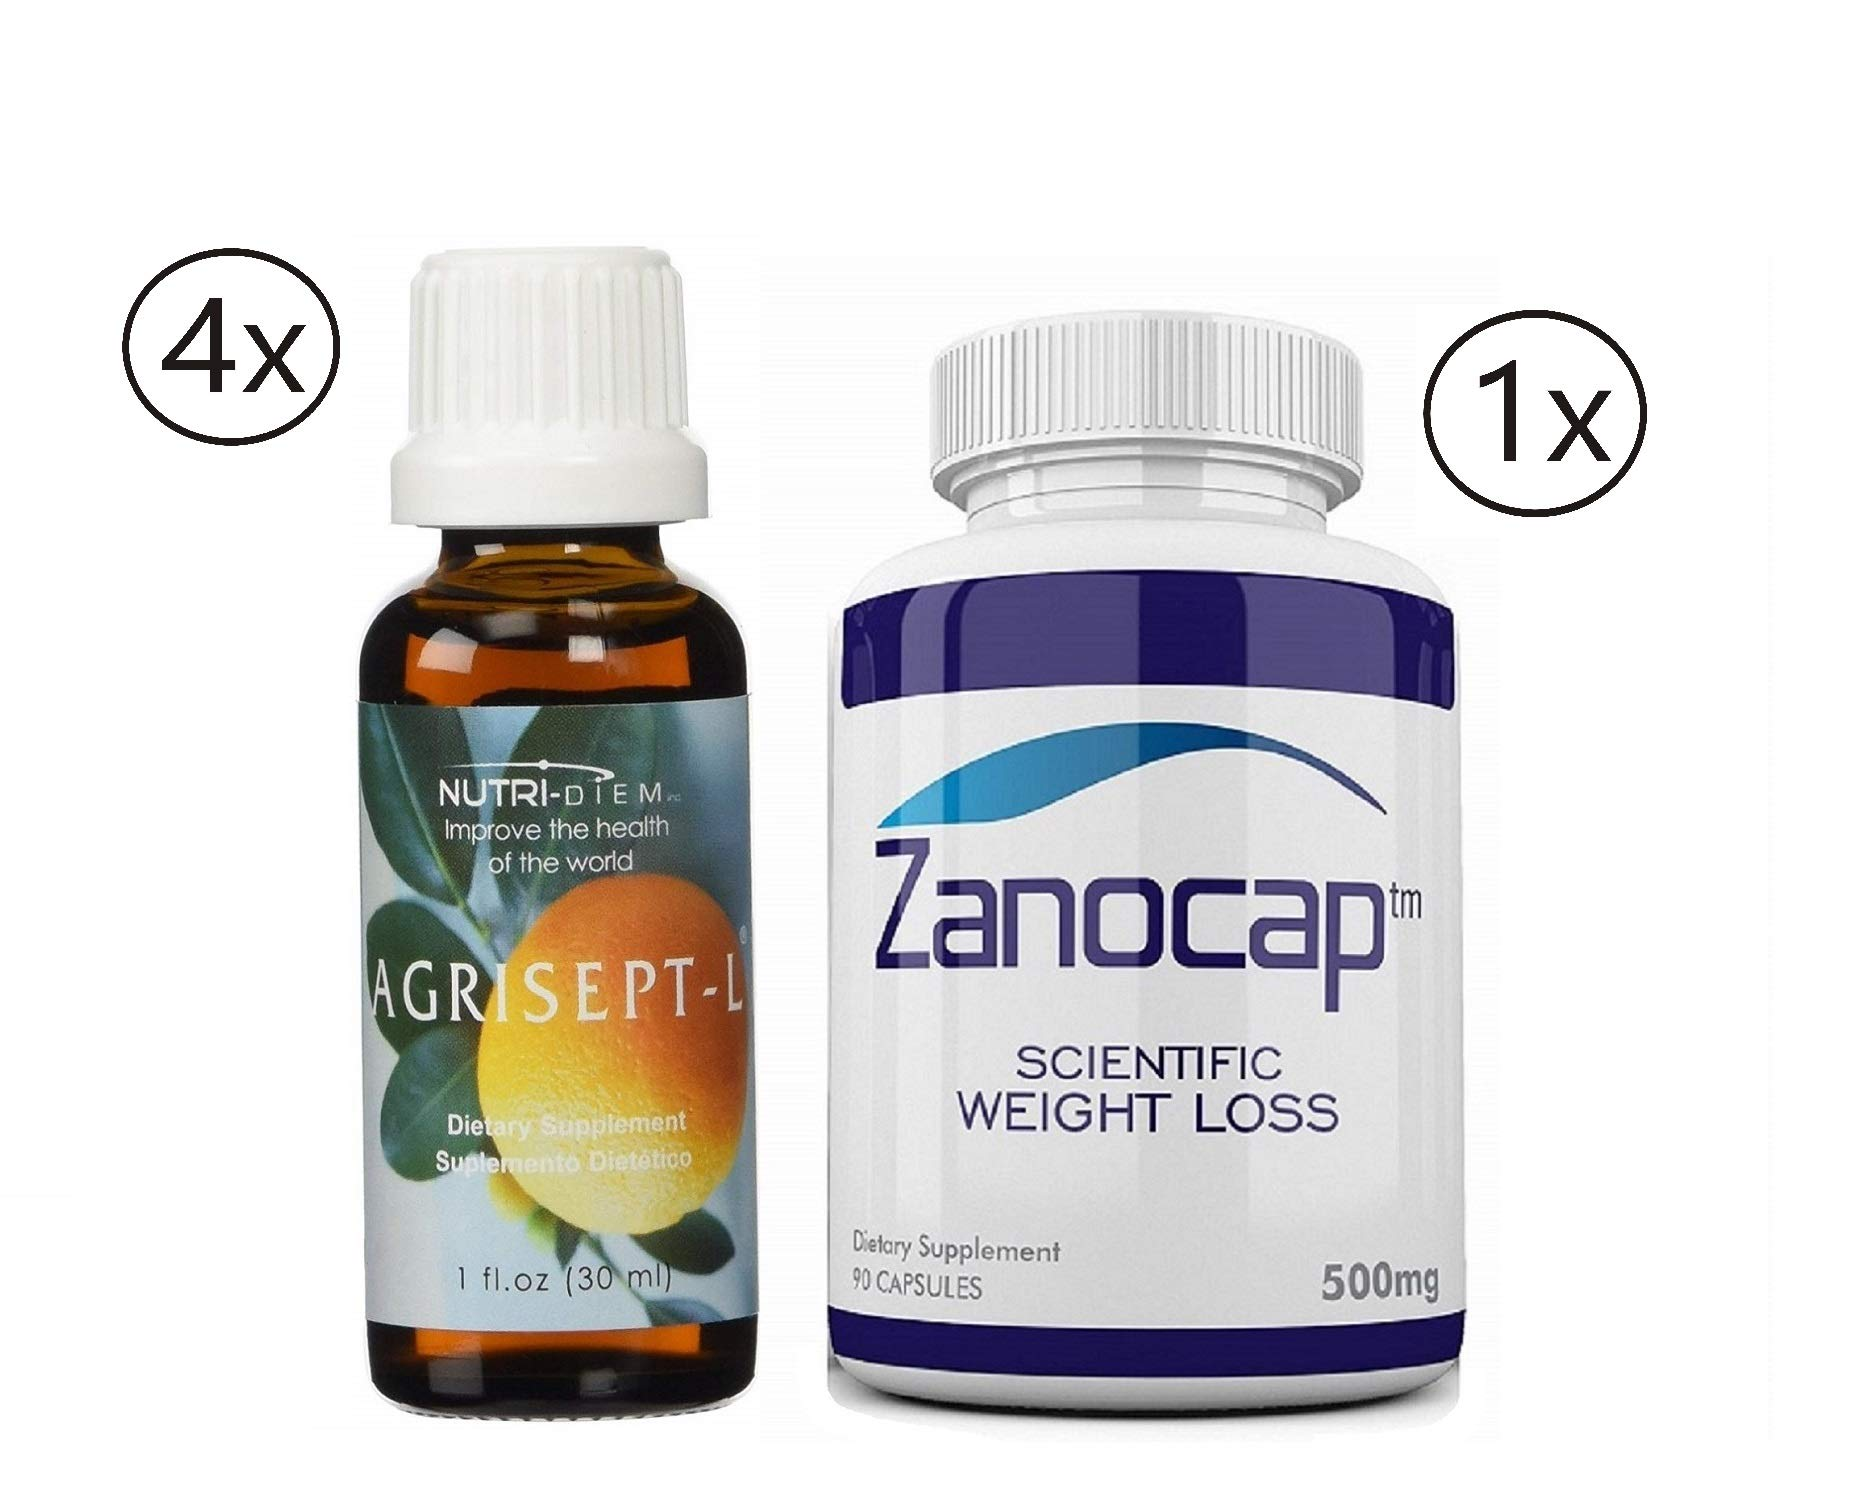 Agrisept L Antioxidant Wellness Weight Loss 4 Bottles with Zanocap Scientific Weight Loss 1 Bottle by M3Dl Kits